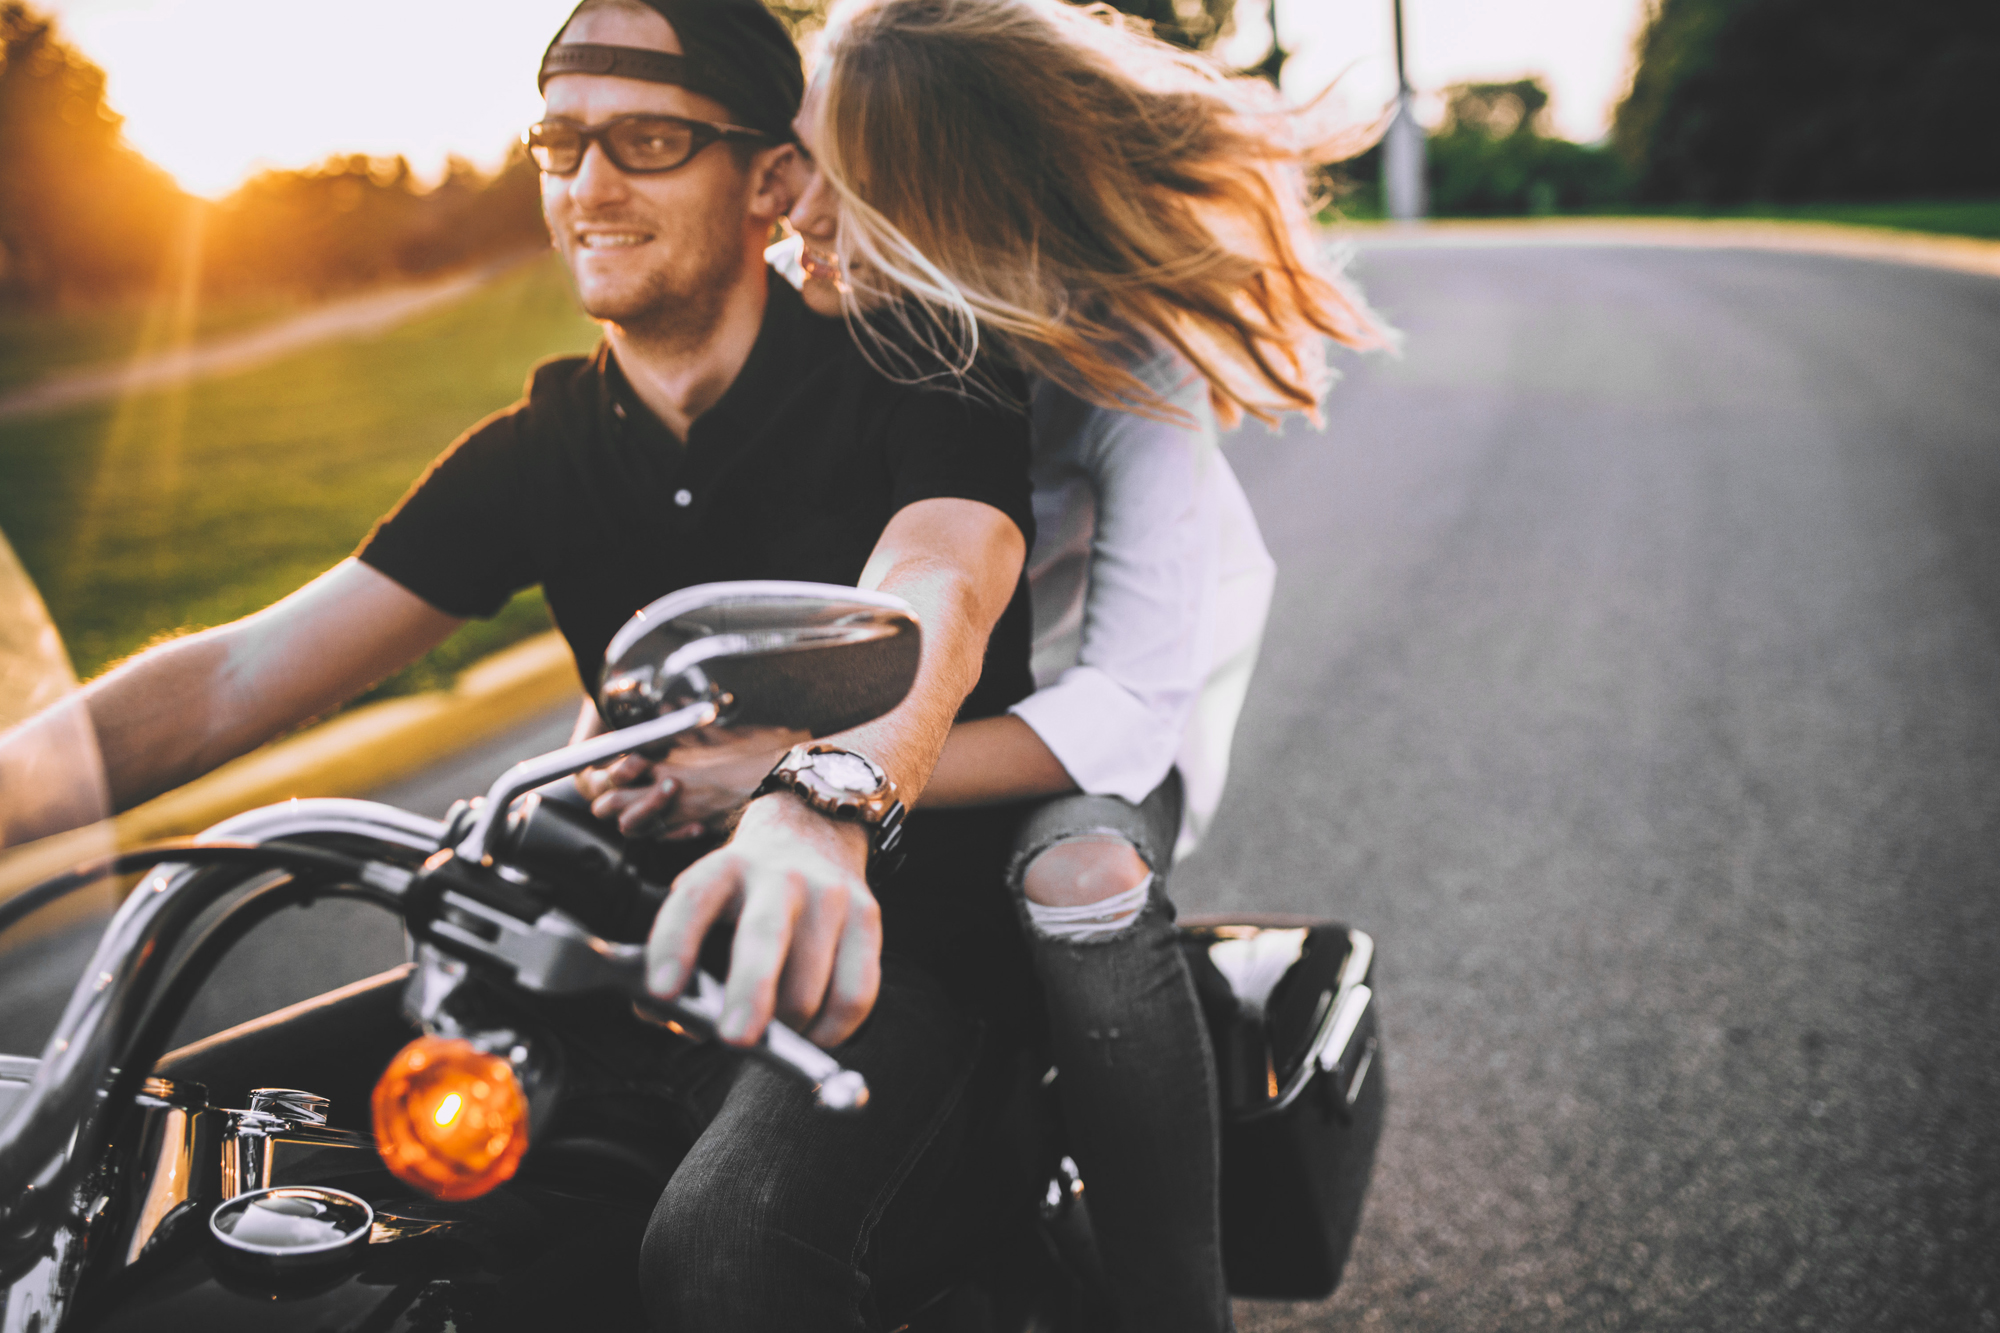 Brandon werth minnesota wedding photographer motorcycles engagement session minneapolis harley davidson